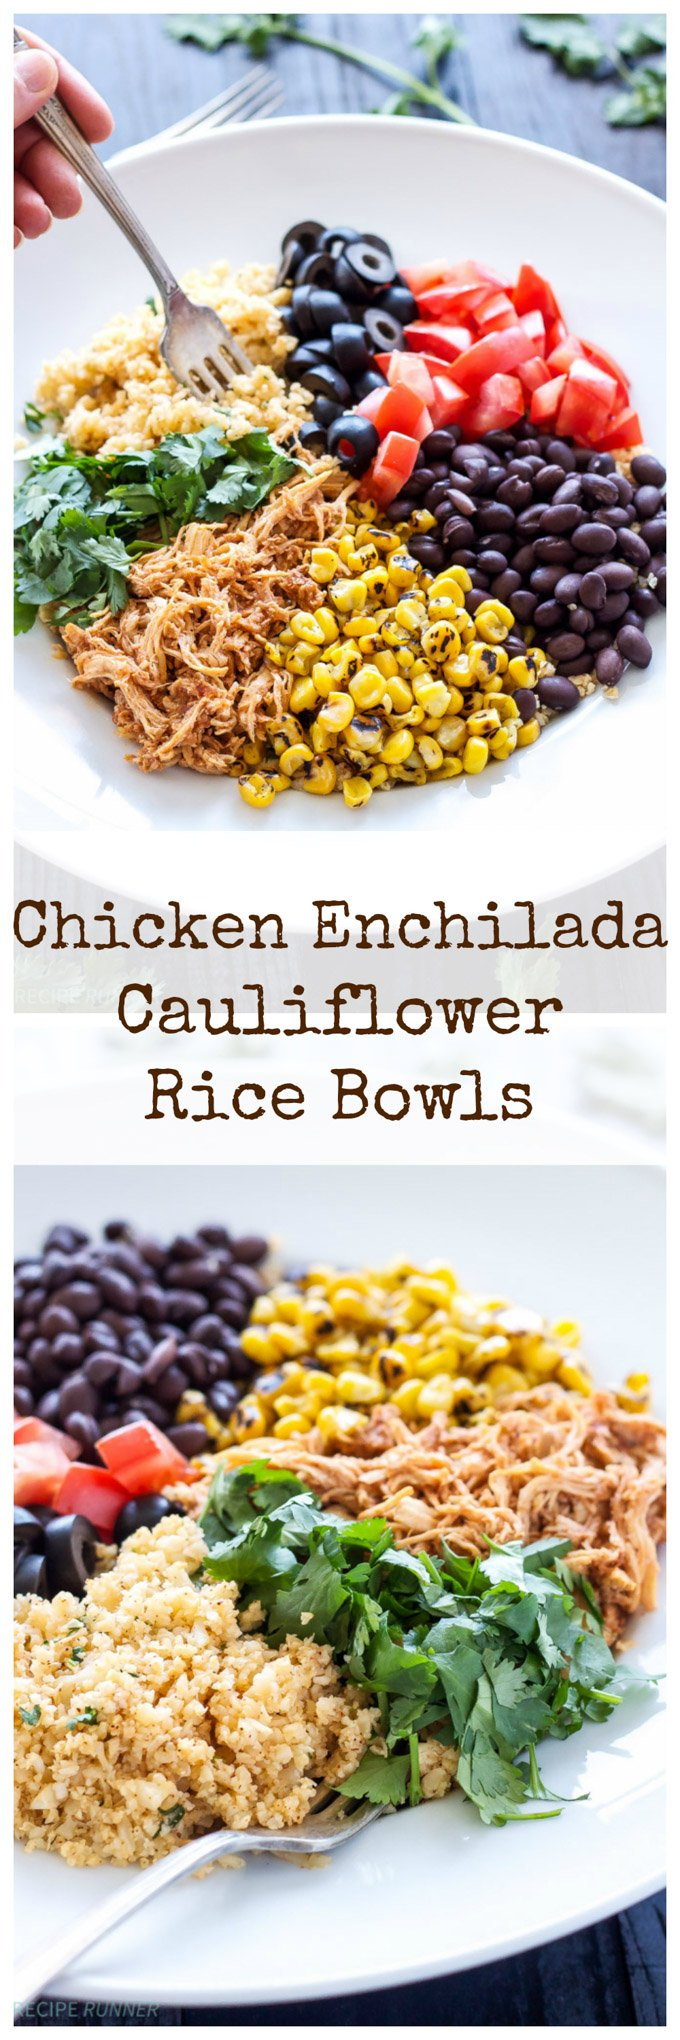 Chicken Enchilada Cauliflower Rice Bowls | This easy to make chicken enchilada bowl recipe uses cauliflower in place of rice for a healthy and delicious dinner!